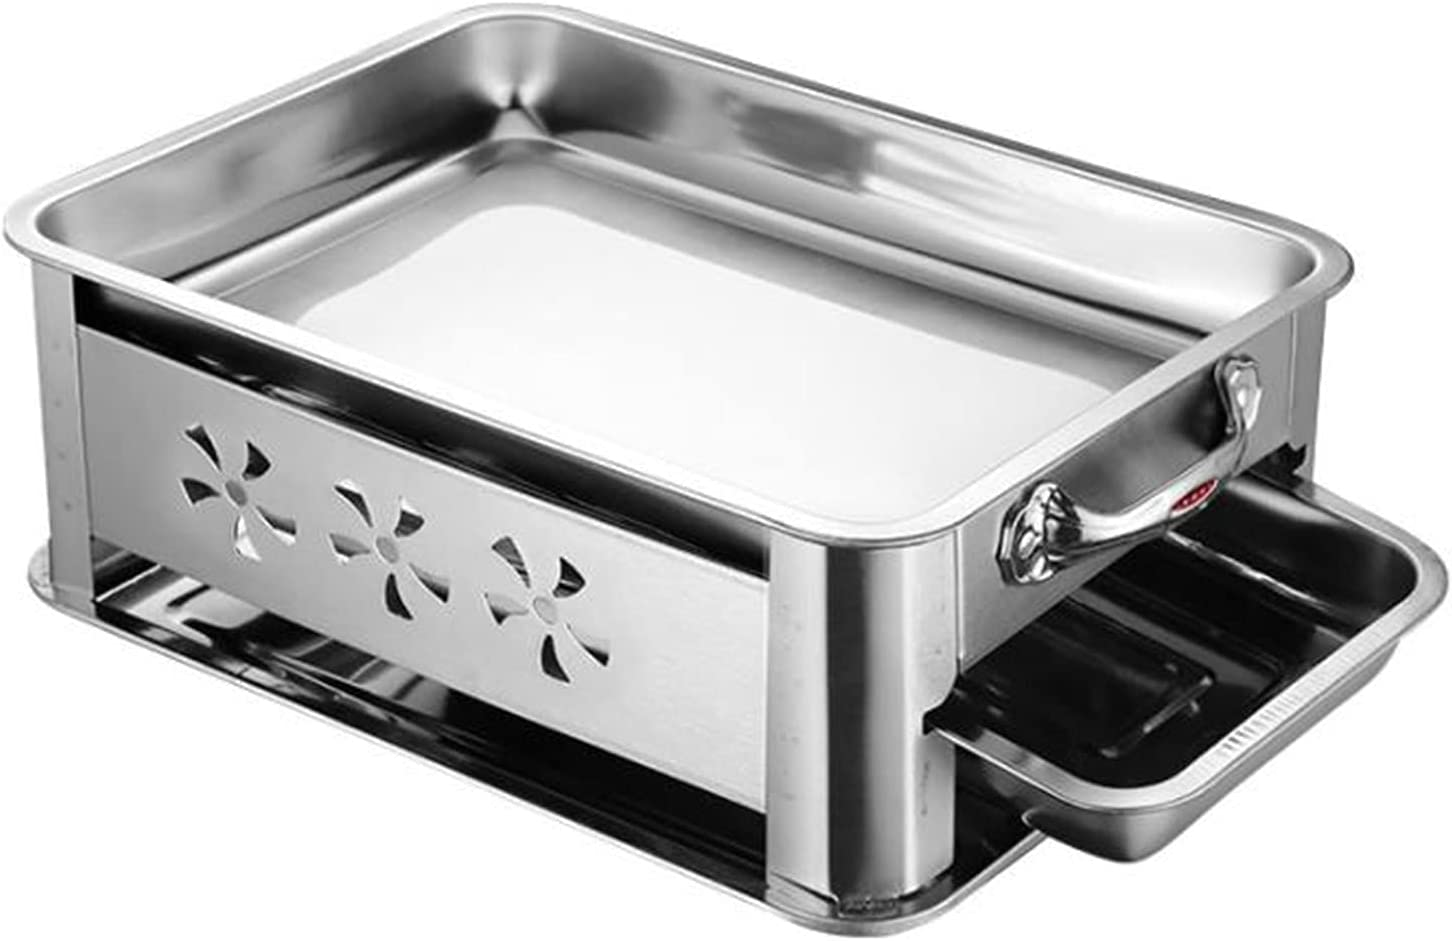 Stainless Special Campaign Dallas Mall Steel Grilled Fish Grill Portable Dual-Purpose Stove